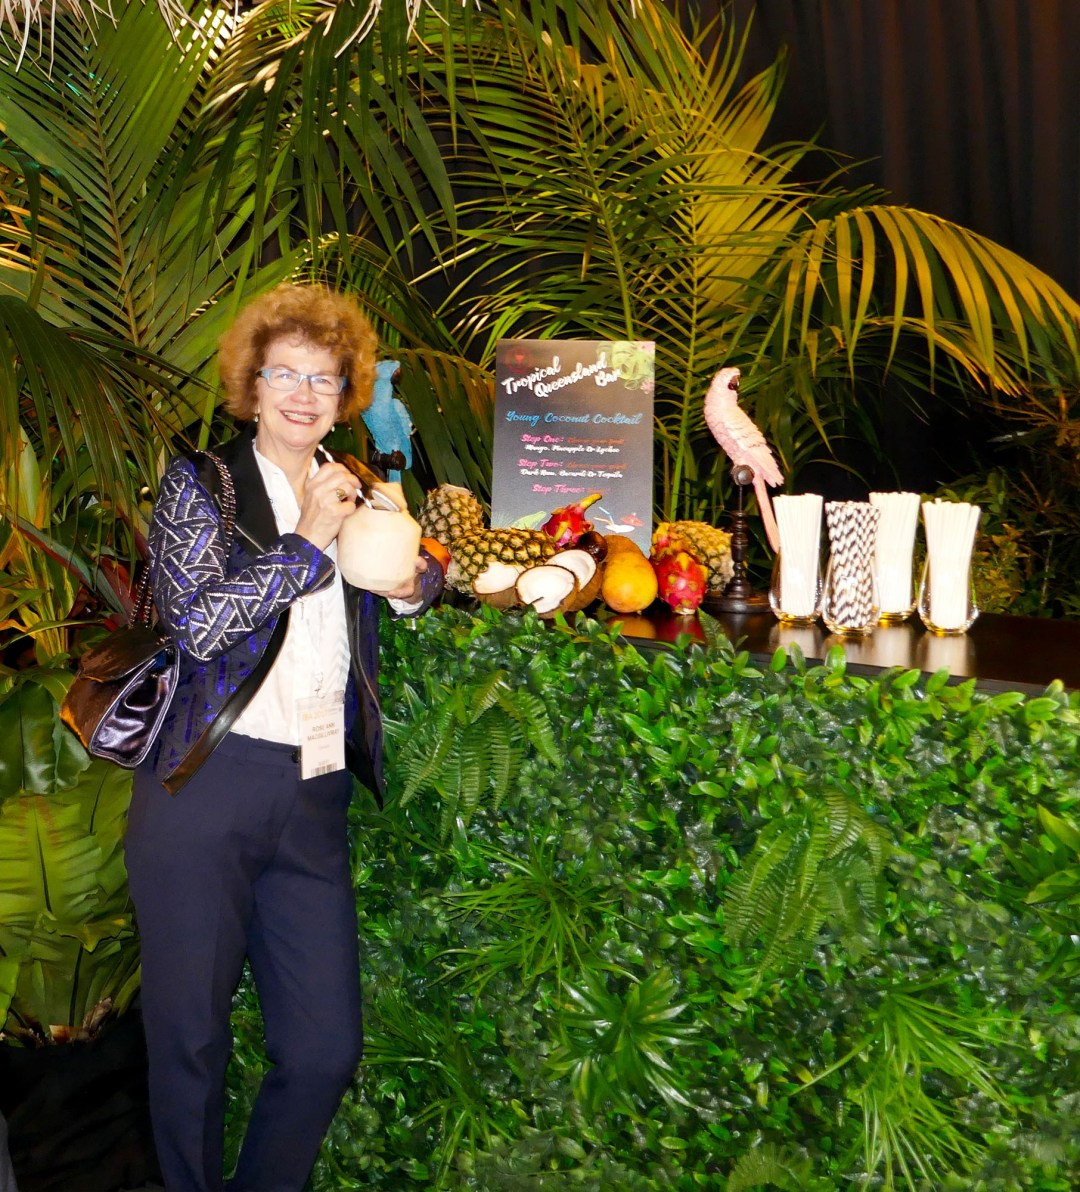 Tropical Queensland at the International Bar Association annual conference in Sydney for boomervoice.